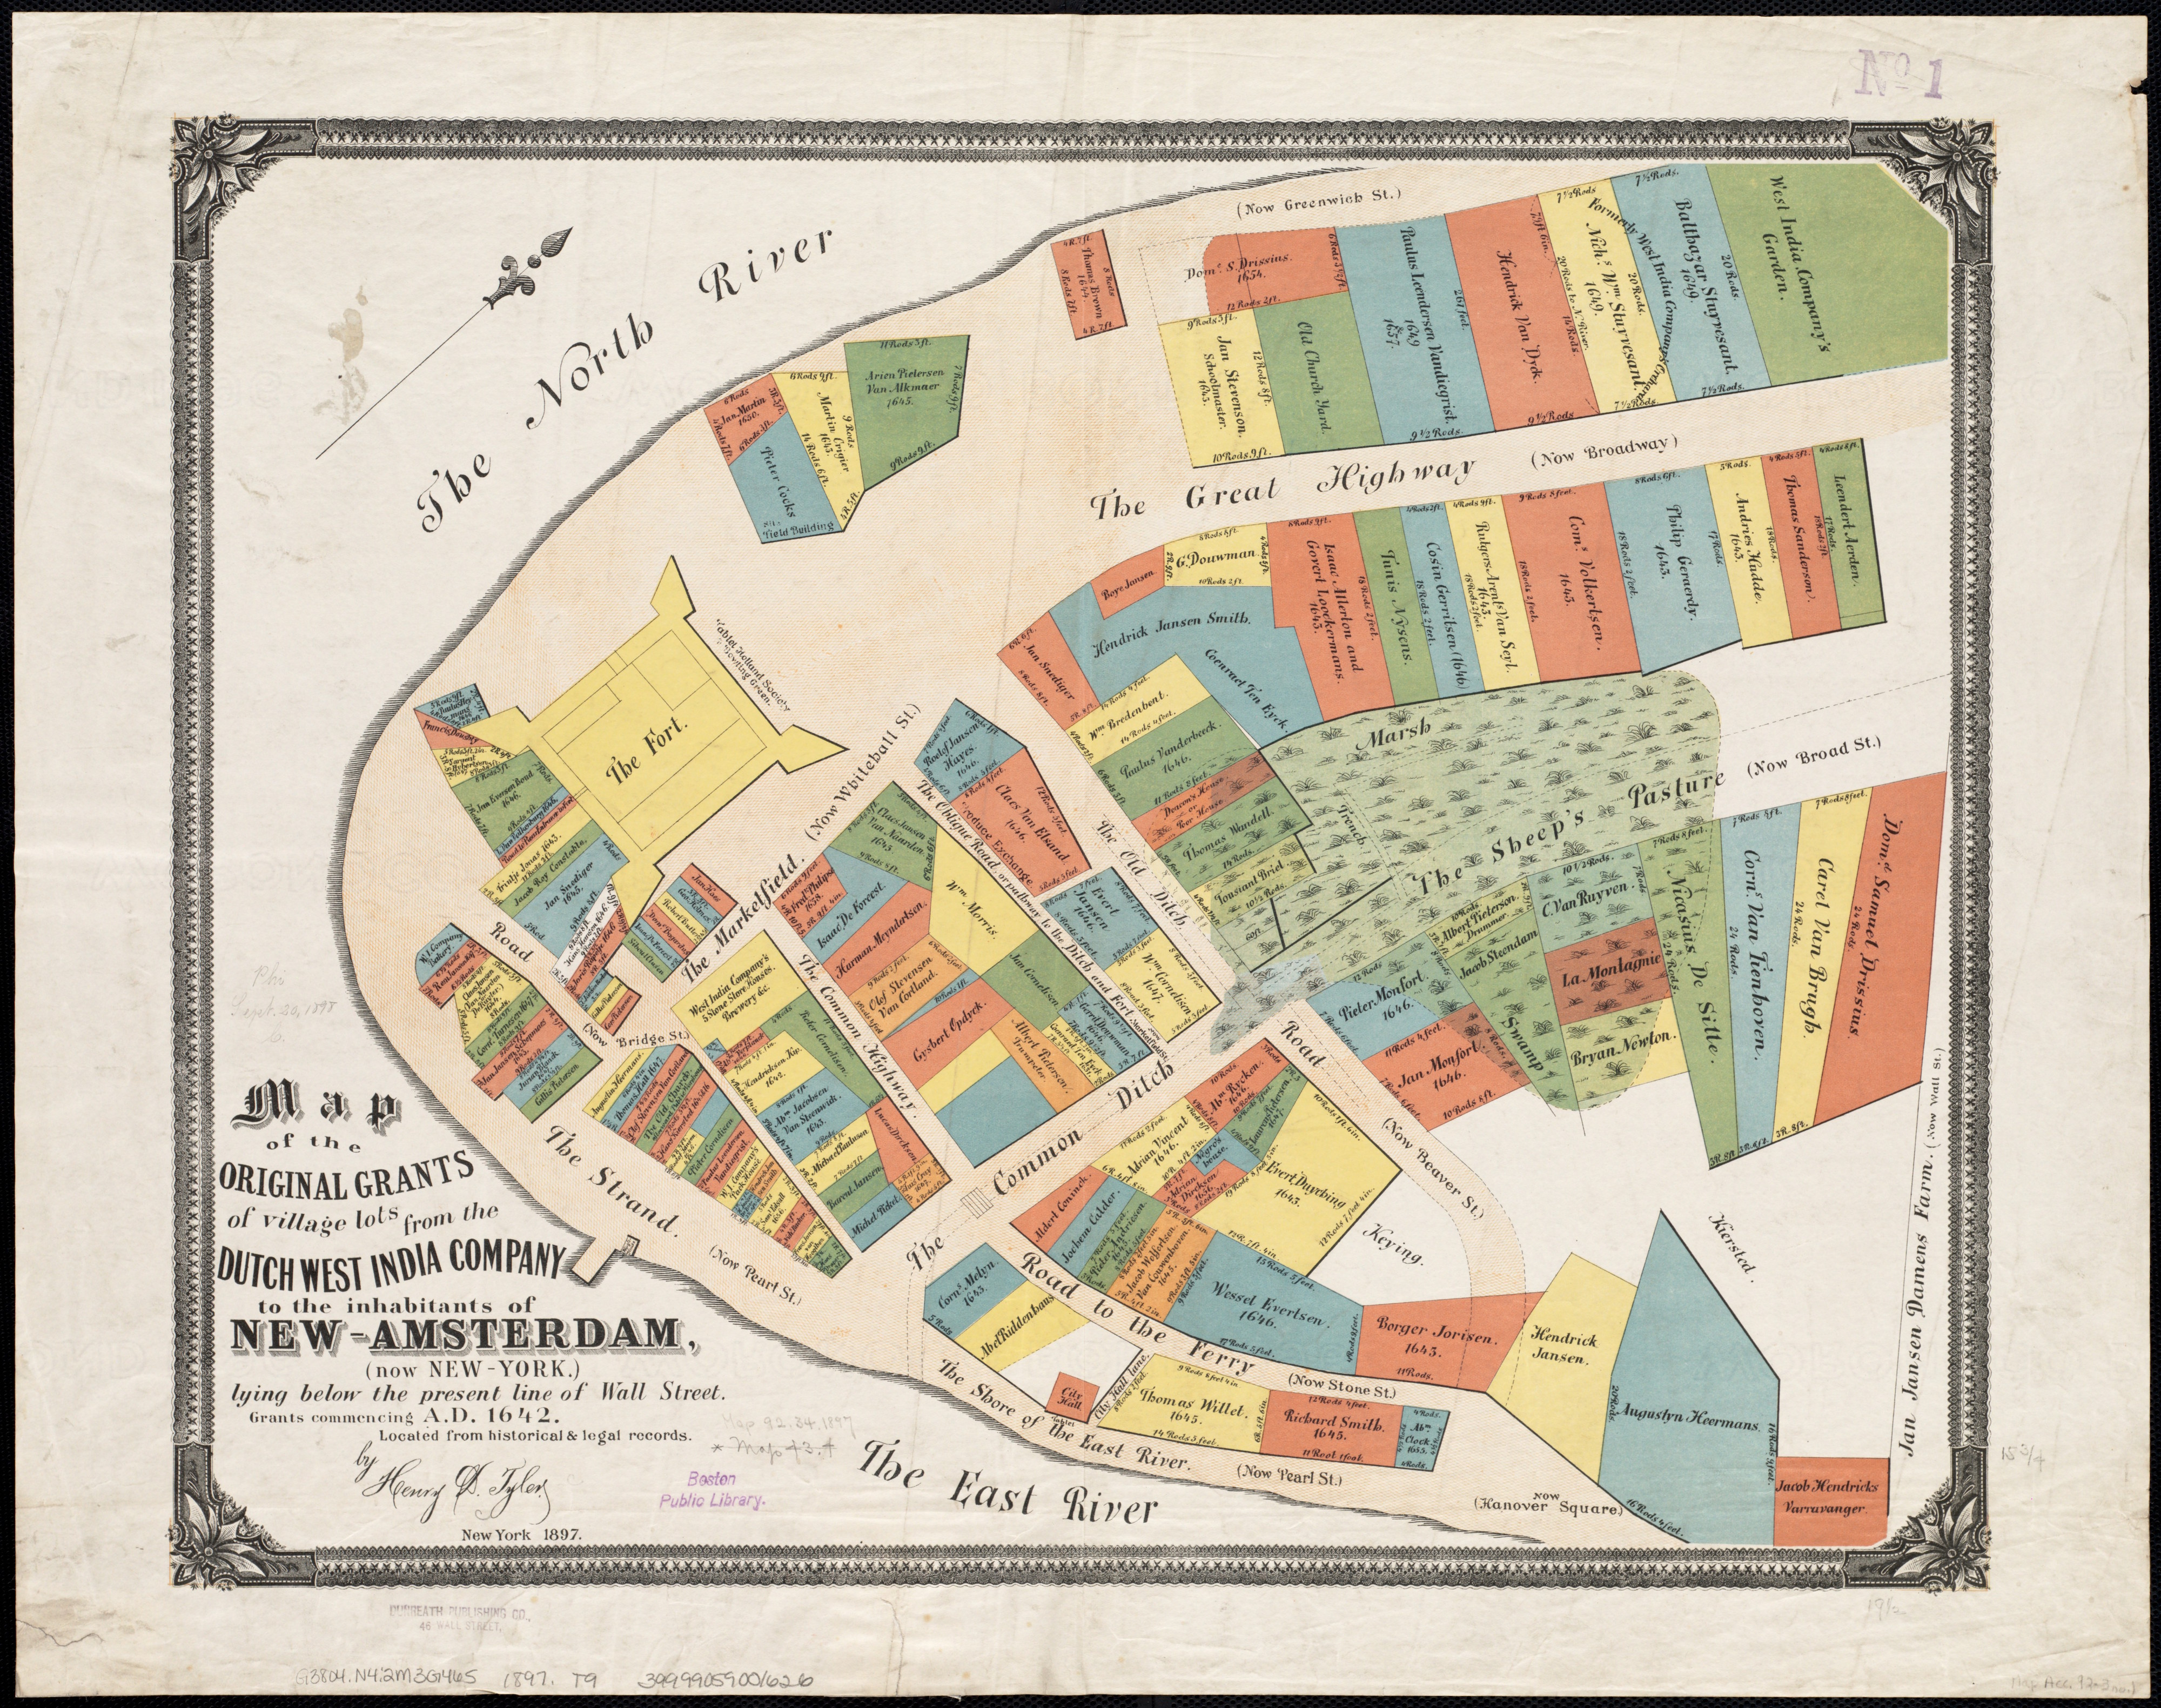 A map showing the original land grantees in New Amsterdam, 1897. | DPLA